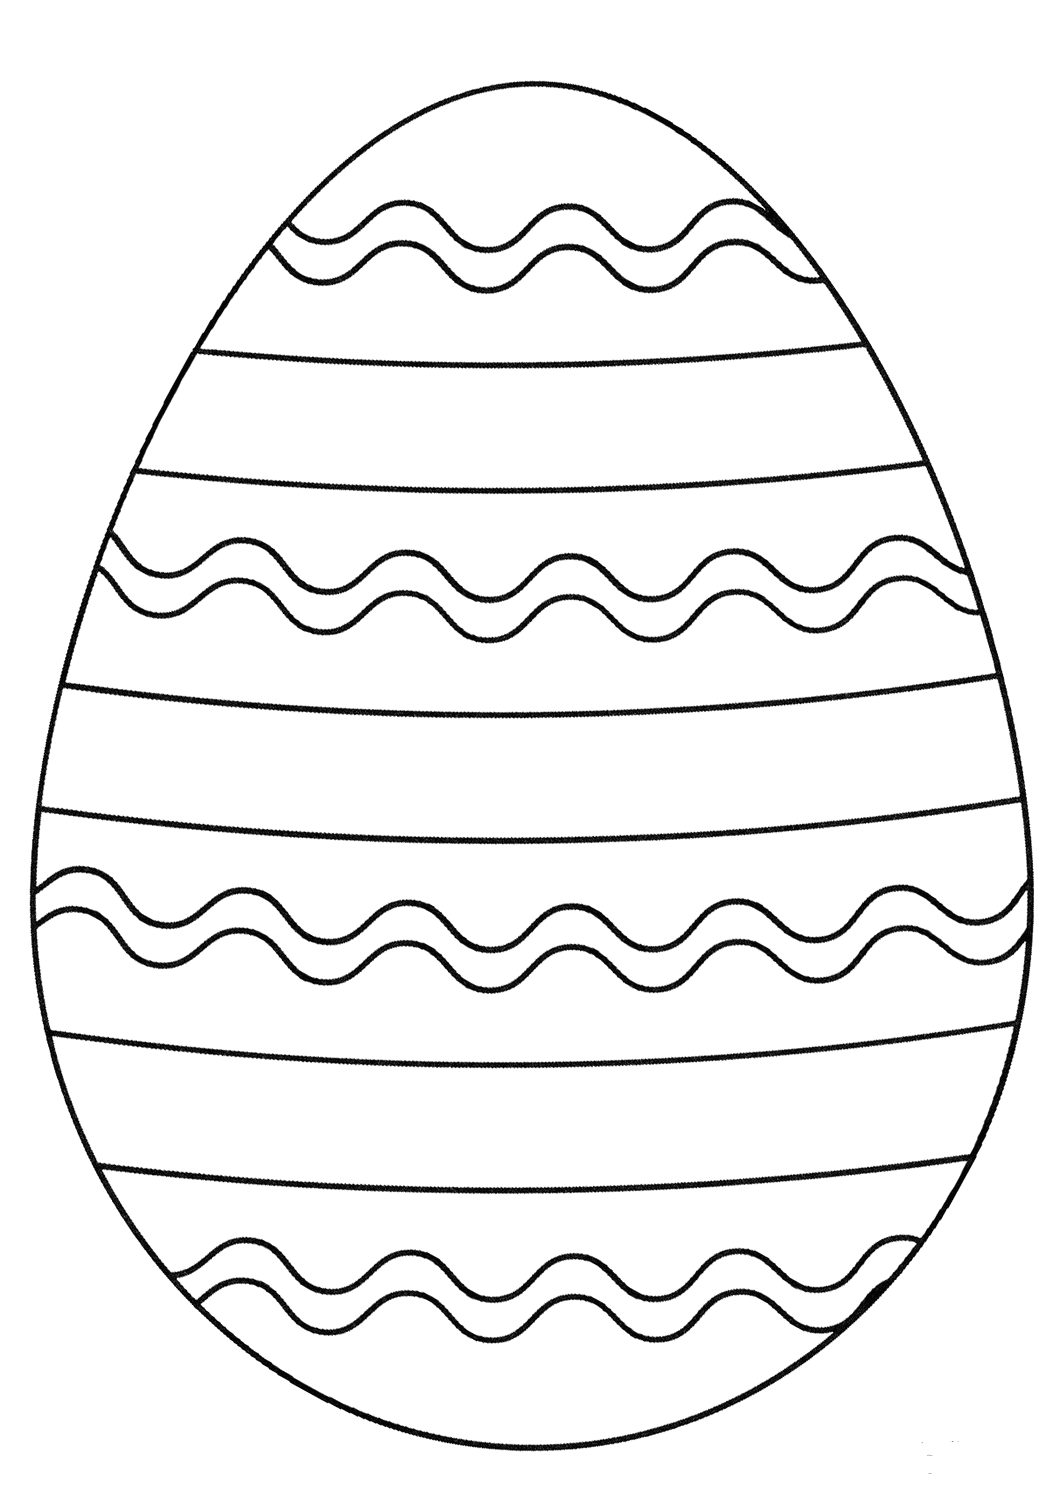 plain easter egg coloring pages easter egg drawing at getdrawings free download pages egg plain coloring easter